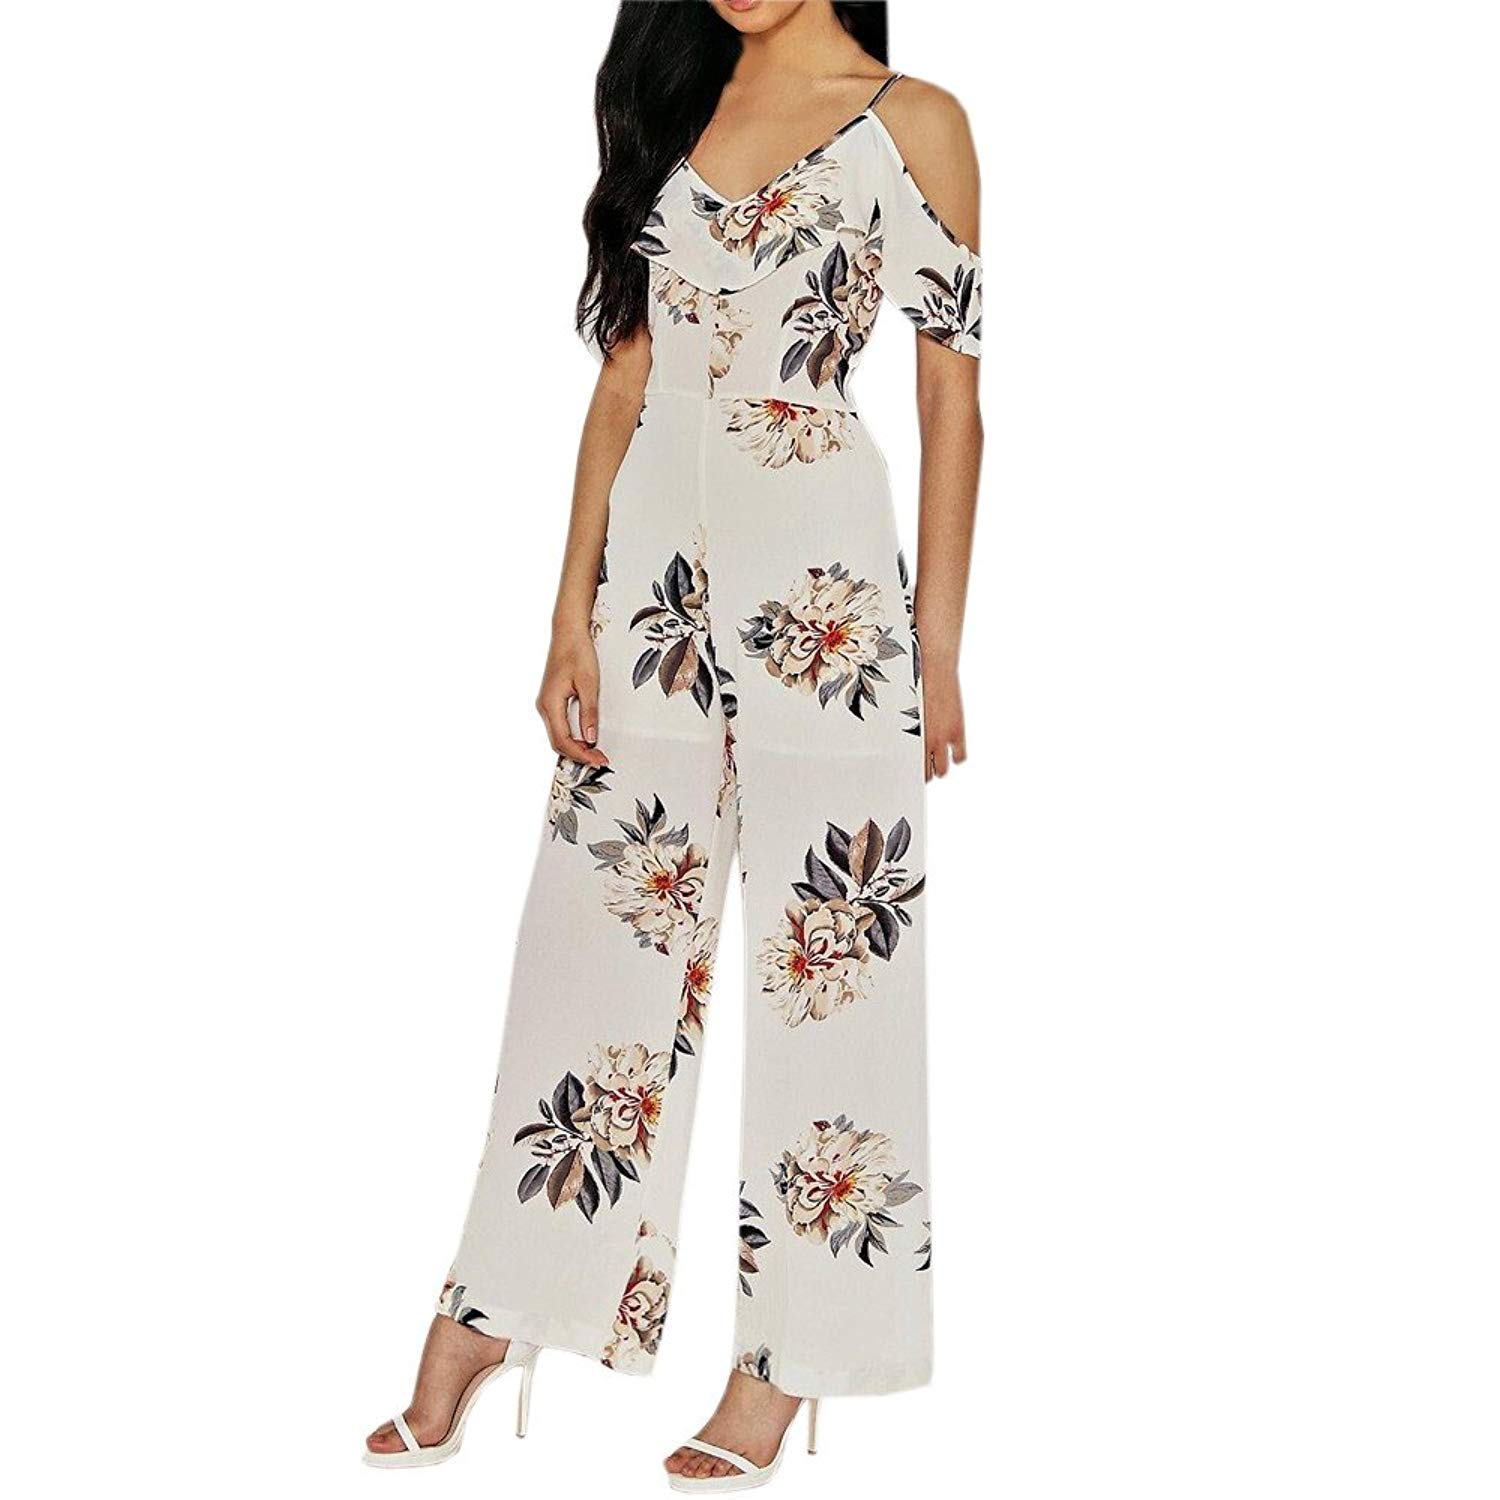 606391a04f Get Quotations · Women s Fashion Jumpsuits